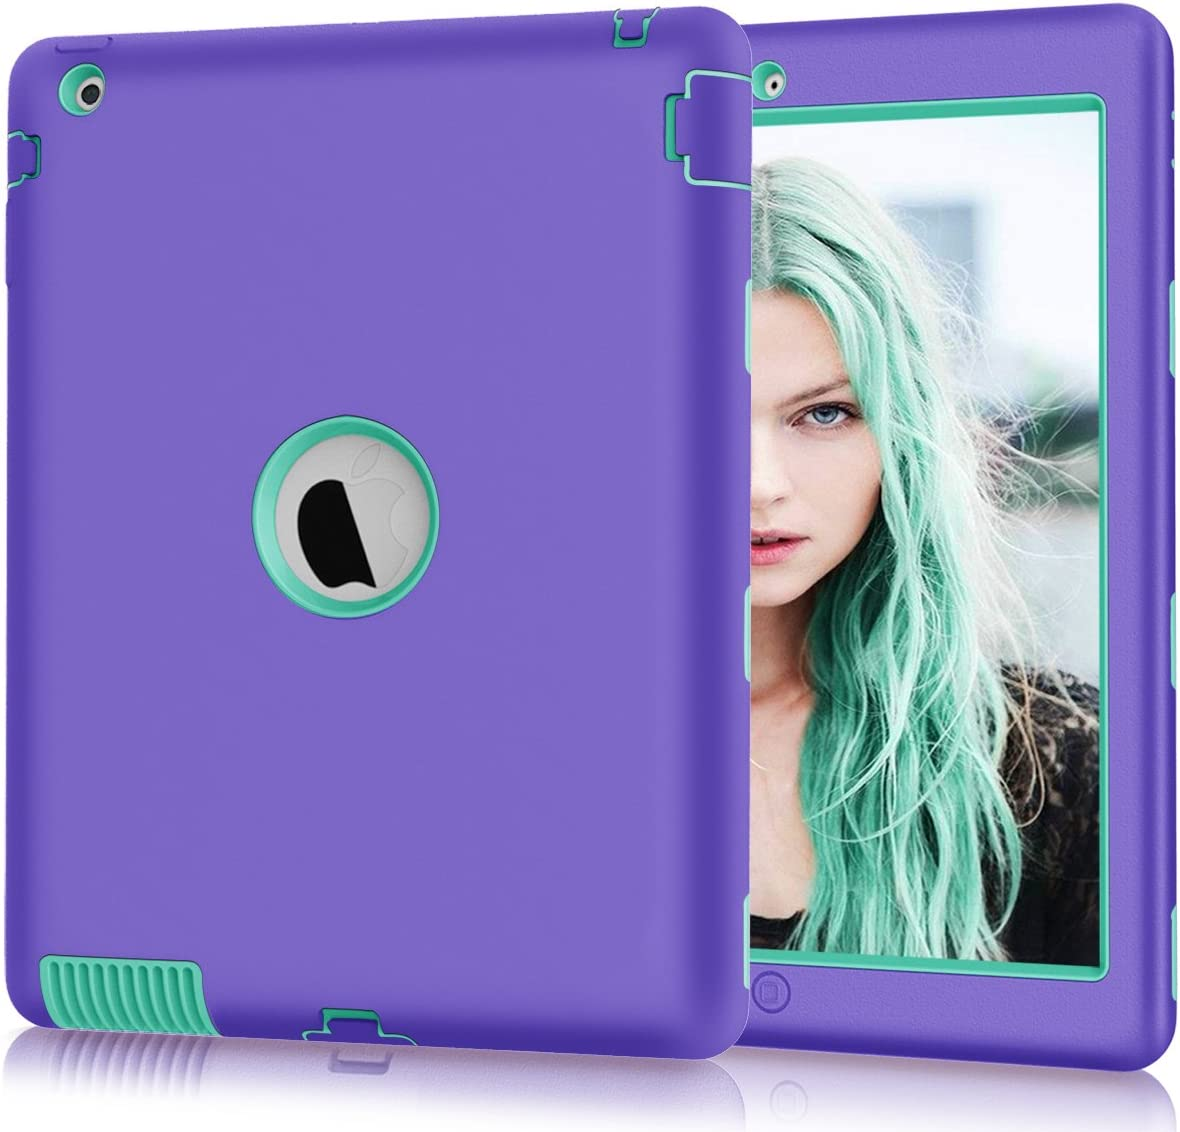 """iPad 2/3/4 Case, Hocase Rugged Slim Shockproof Silicone Rubber+Hard Plastic Dual Layer Protective Case Cover for Apple 9.7"""" iPad 2nd/3rd/4th Generation - Purple/Teal"""